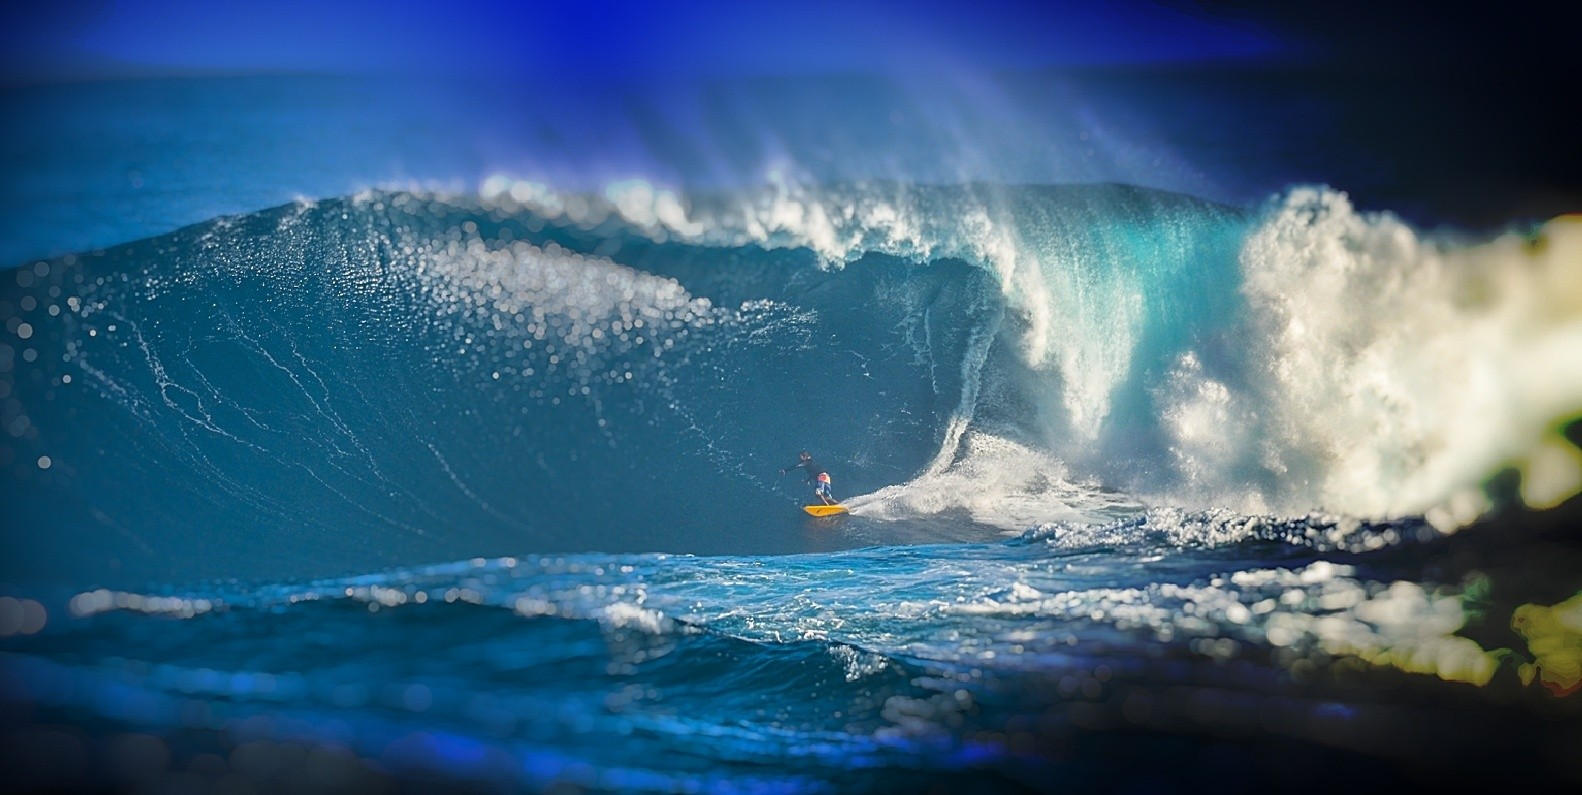 DaveSpruce's photo of Peahi - Jaws